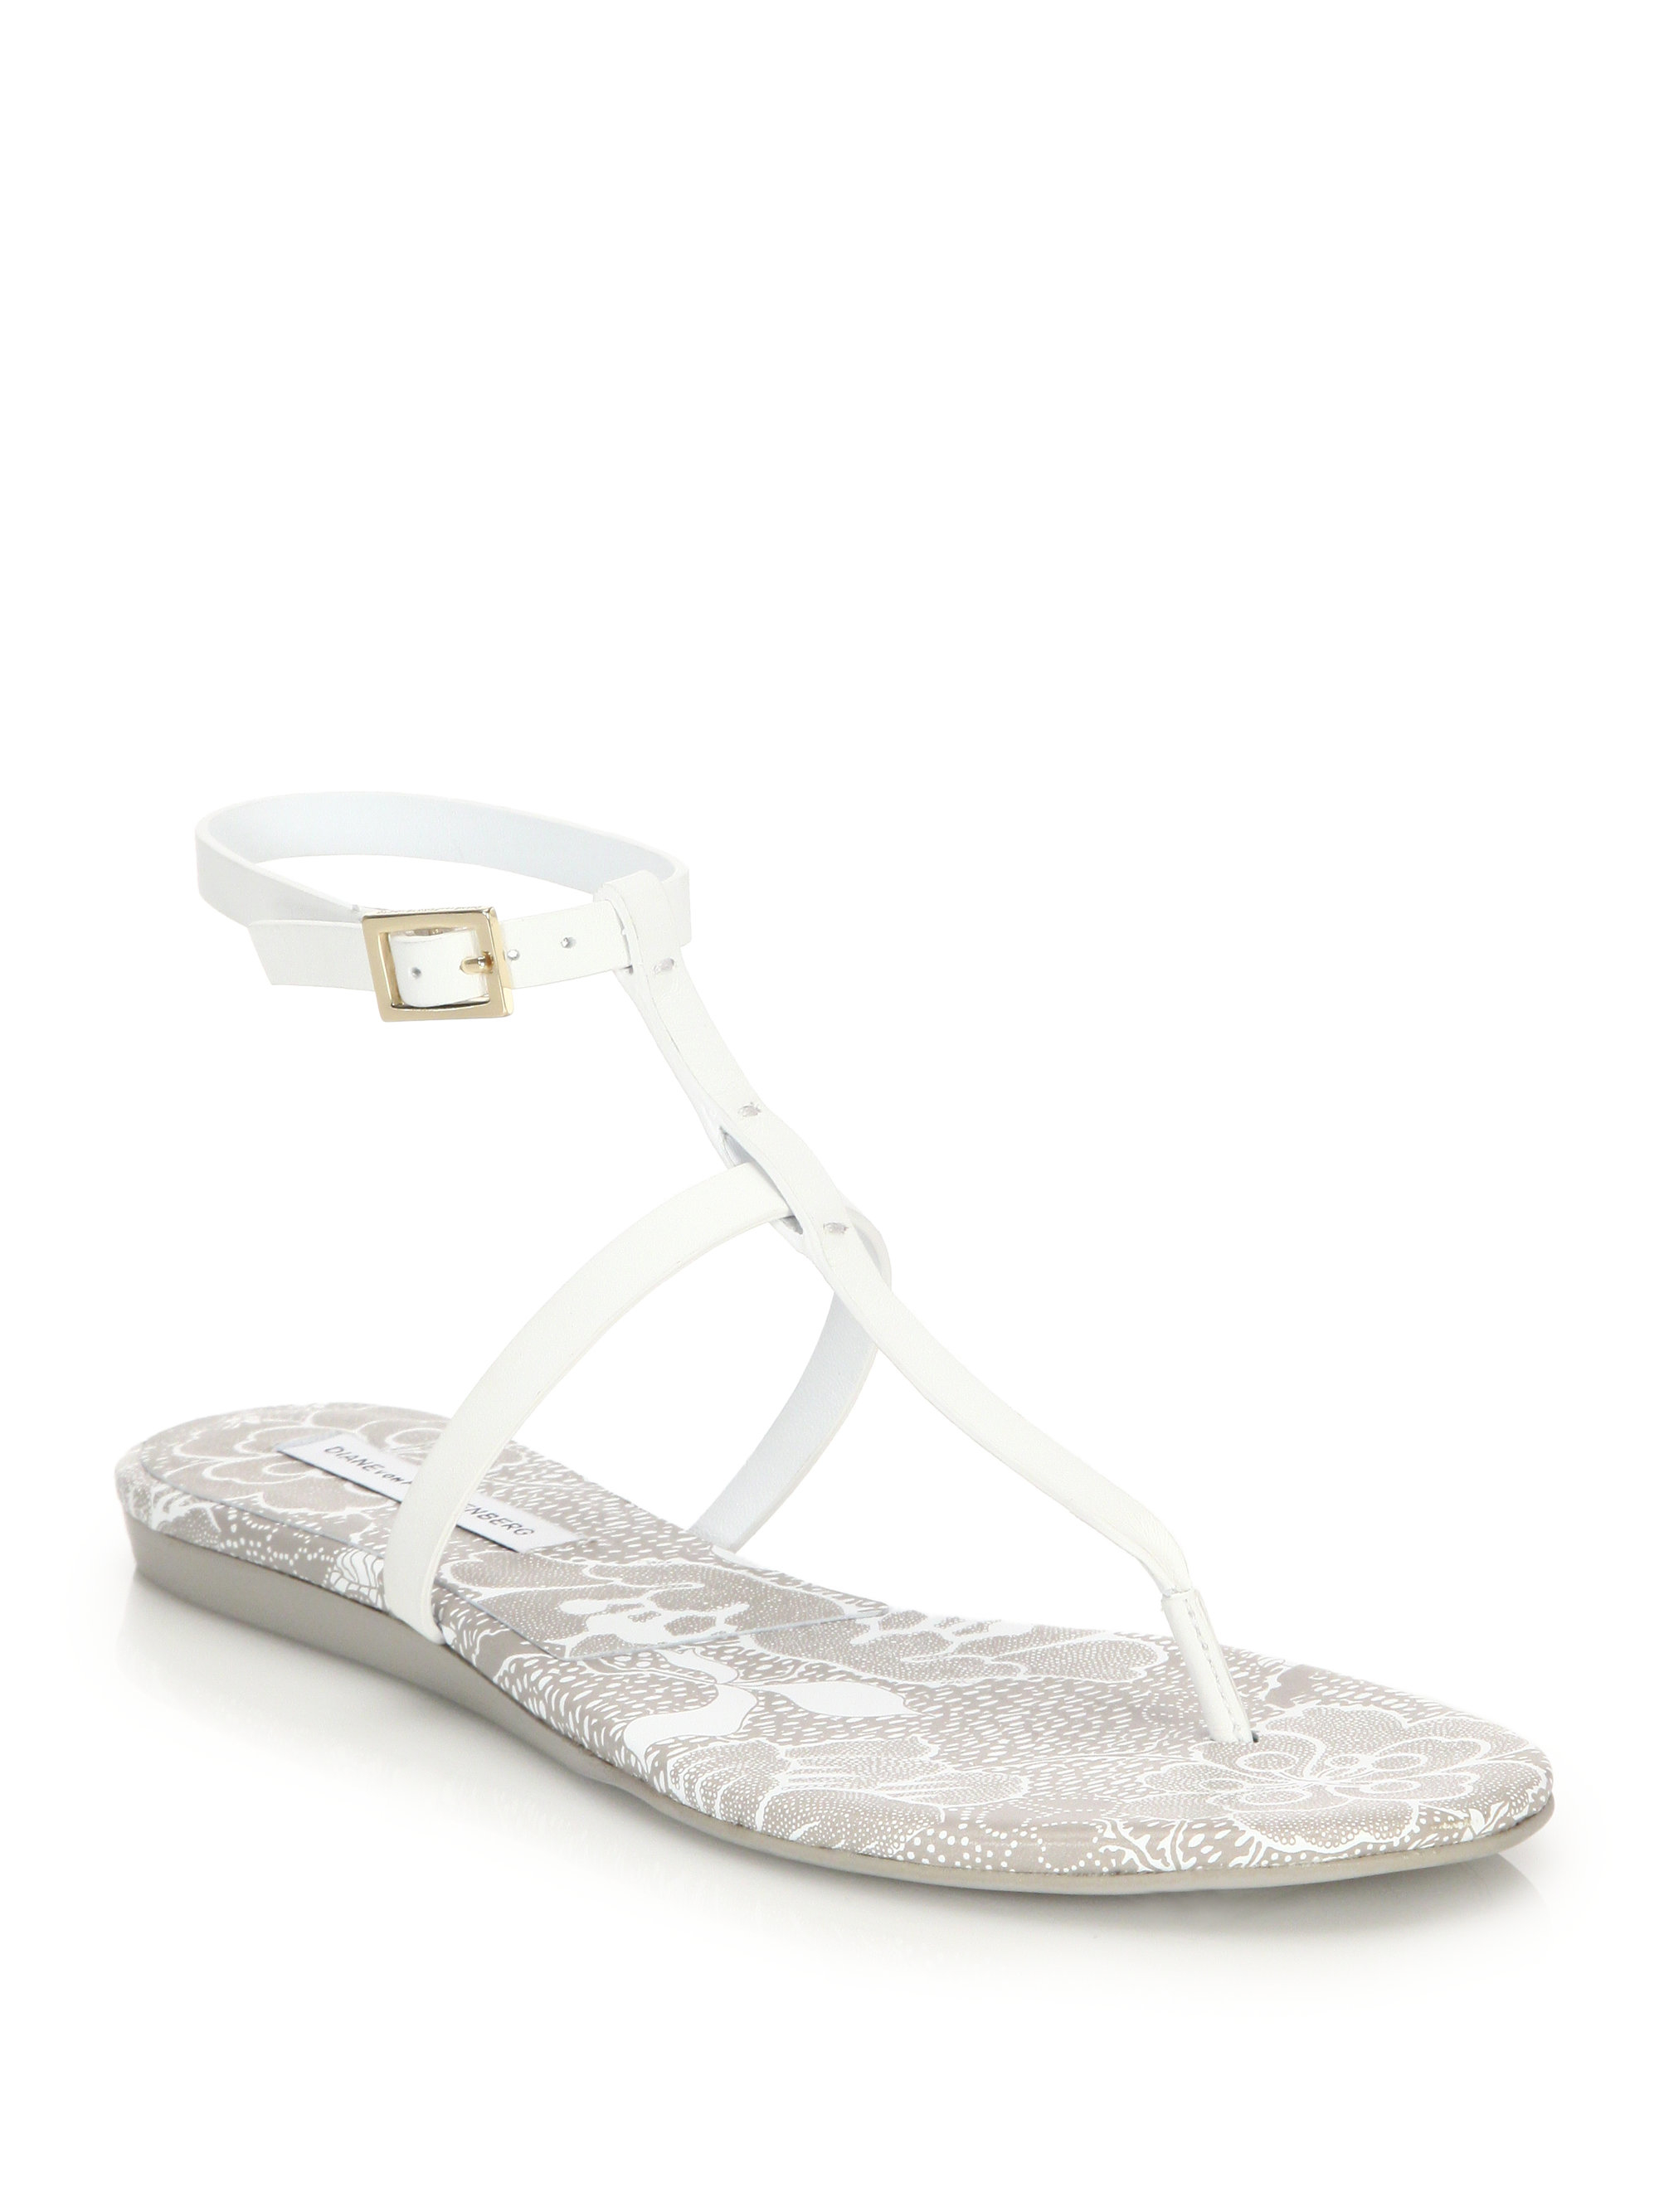 Diane von Furstenberg T-Strap Leather Sandals excellent cheap online classic sale online how much online sXk1EQ